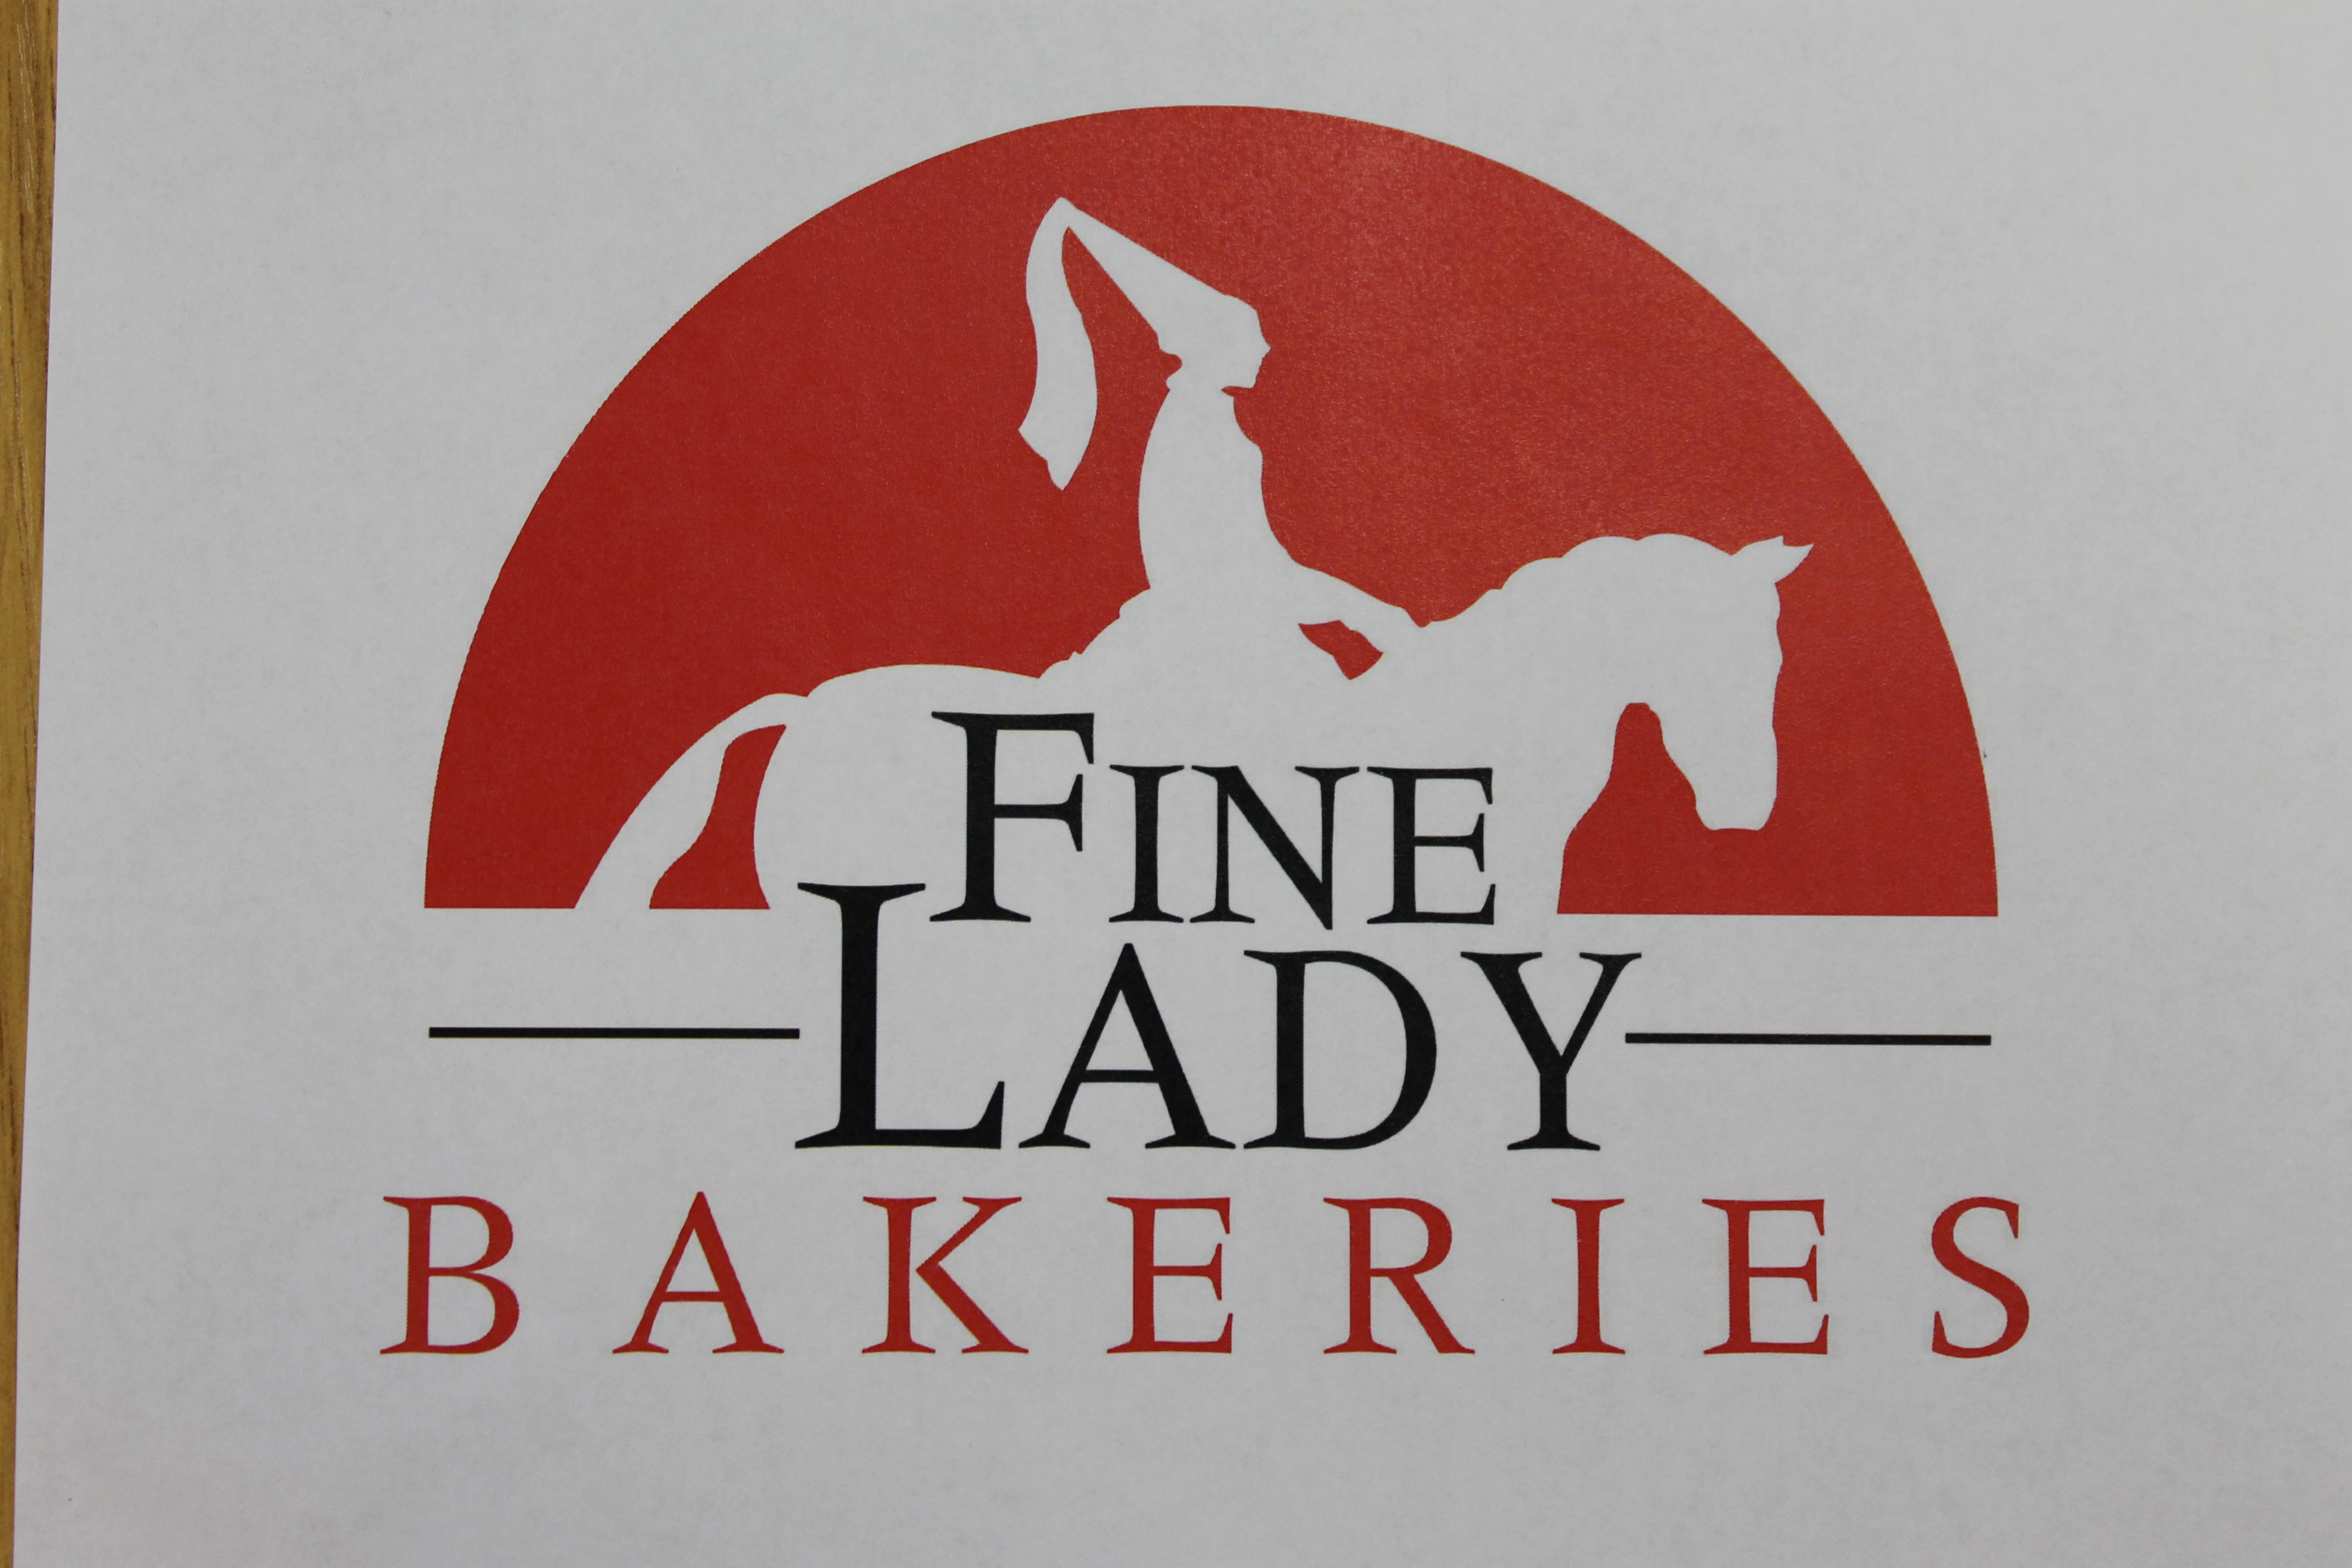 Fine Lady bakeries Ltd